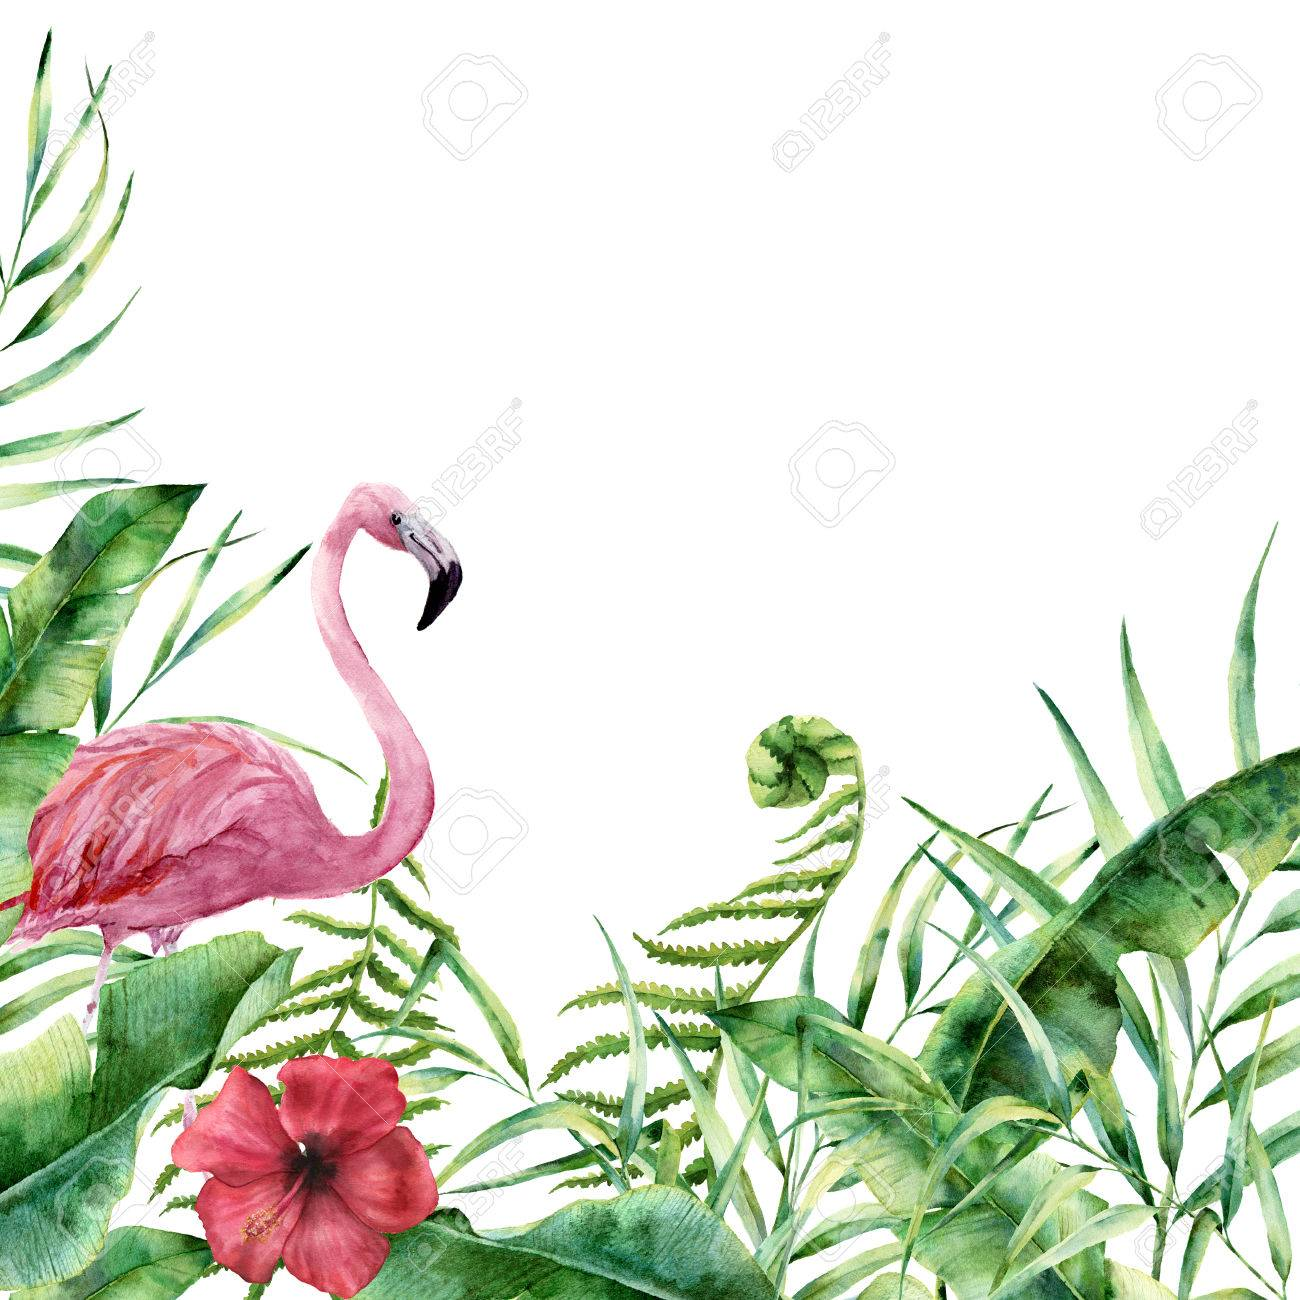 Watercolor tropical nature card. Hand painted floral frame with palm tree leaves, fern branch, banana and magnolia leaves, hibiscus flower and flamingo isolated on white background. Greeting design - 78903993